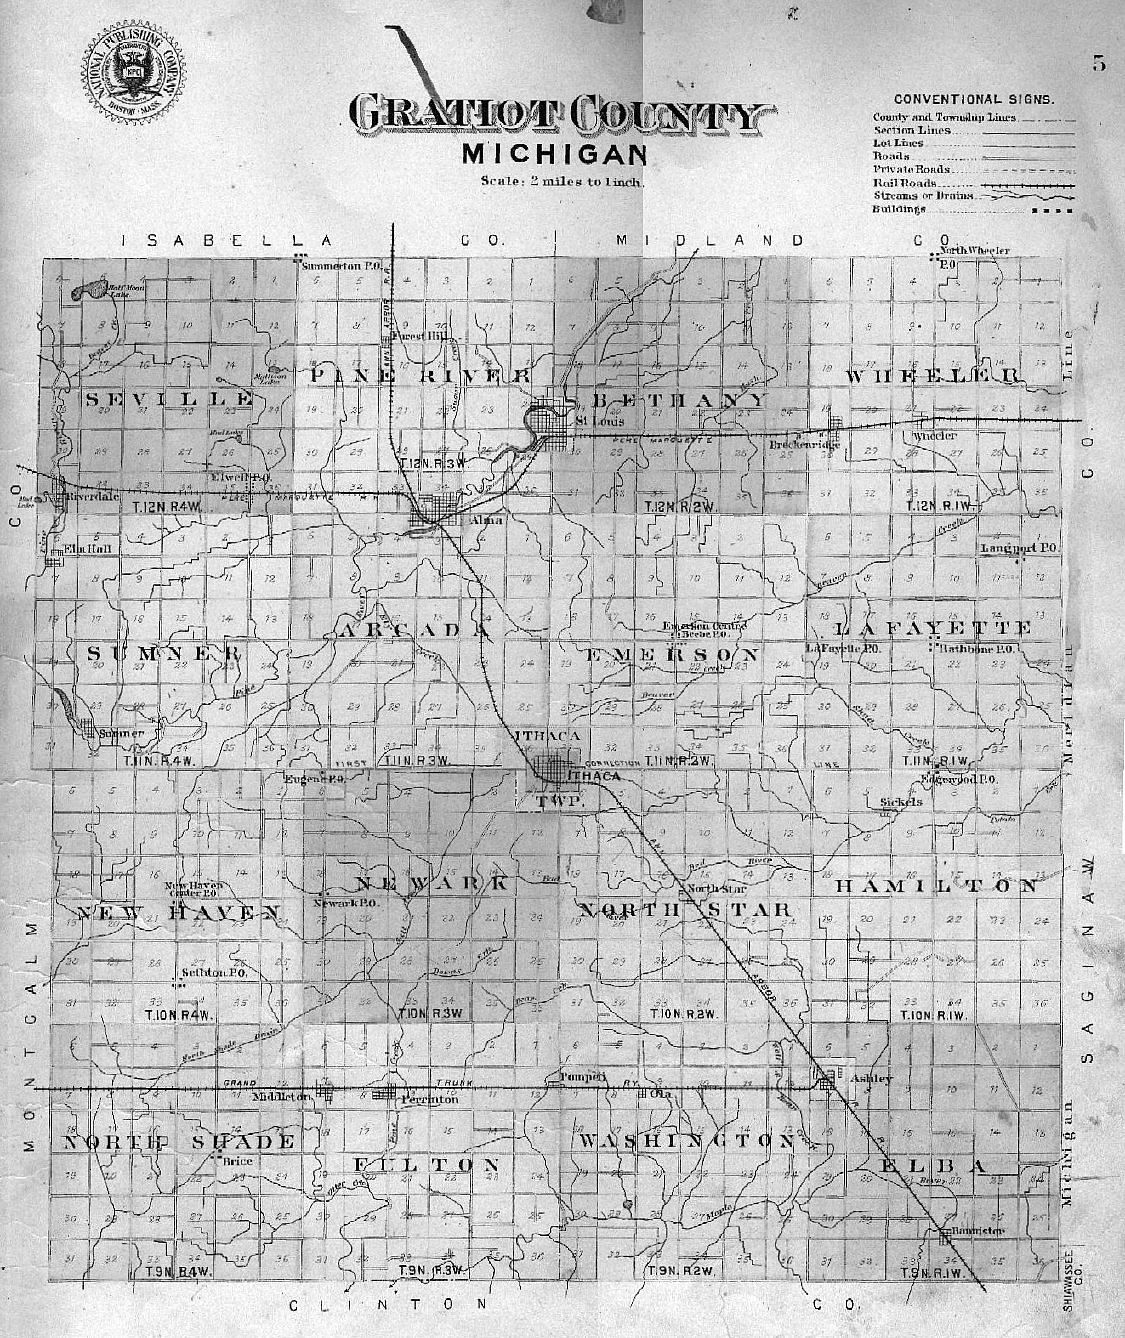 Michigan gratiot county breckenridge - Gratiot Co With Townships Towns And Other Small Geographical Markers